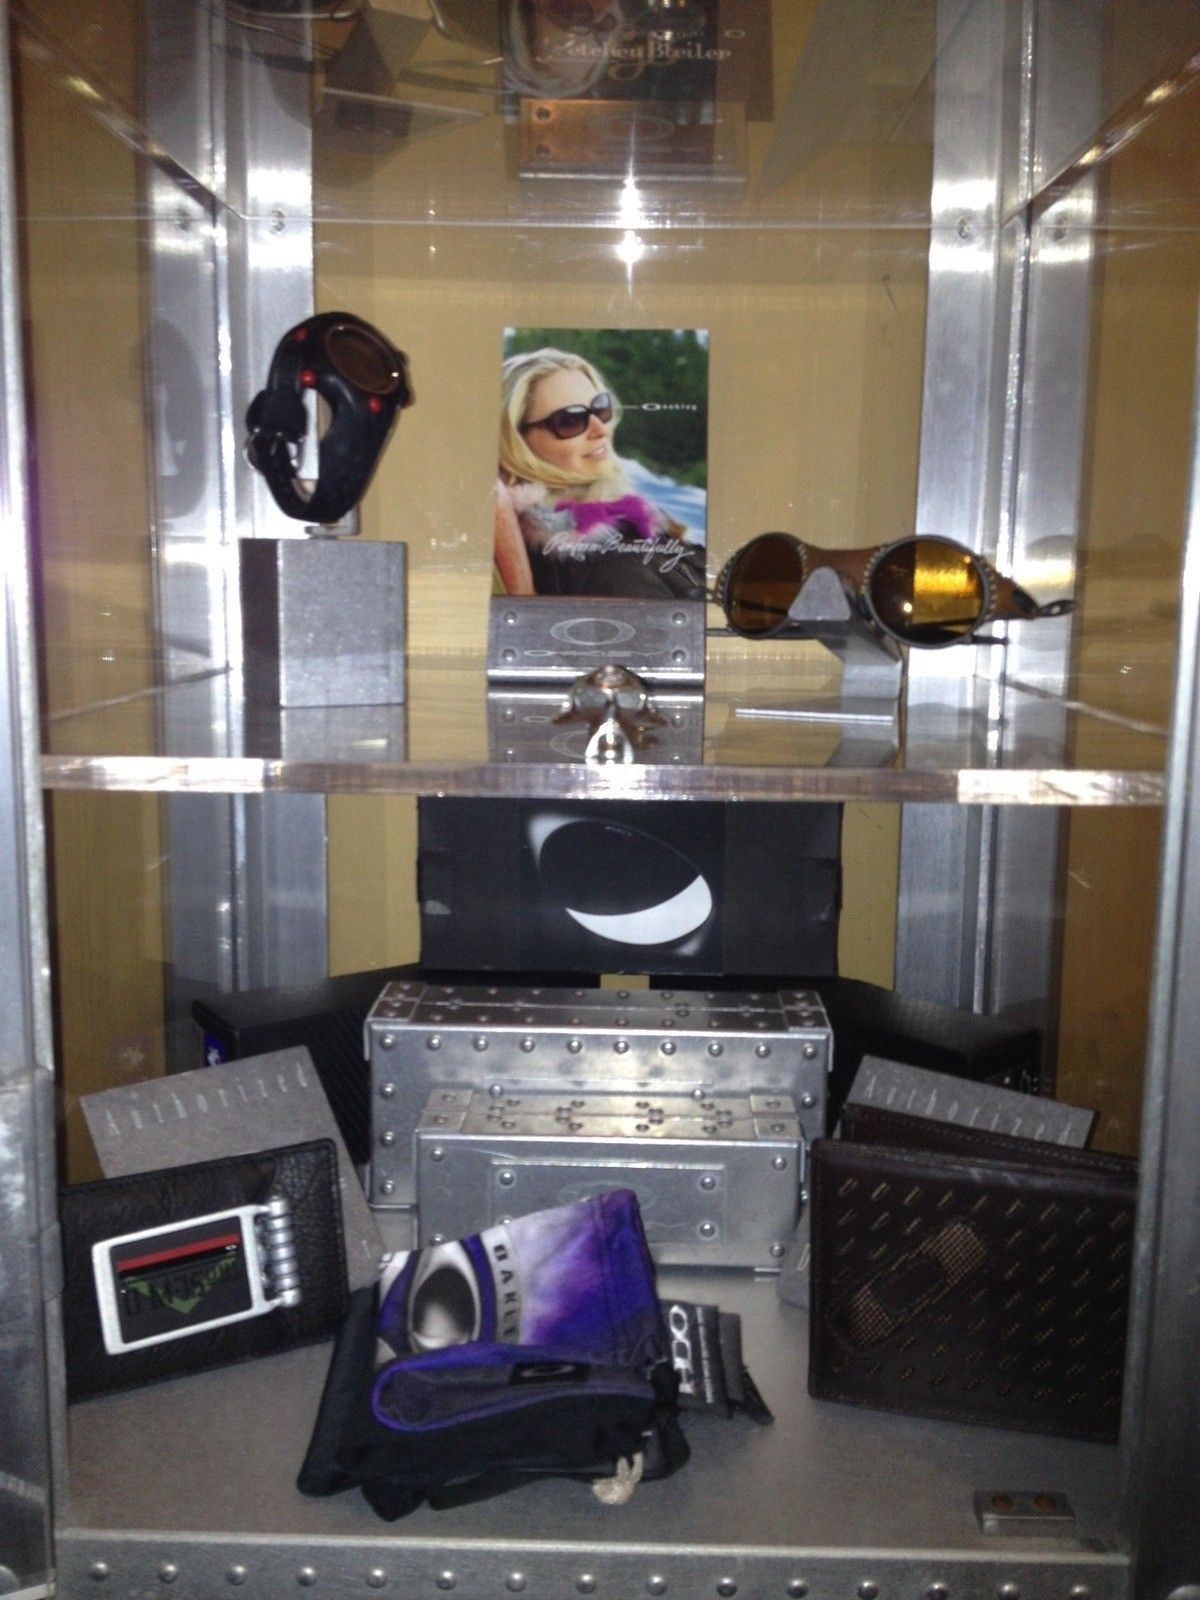 My Collection And Case - oppLBg7j_original.jpg